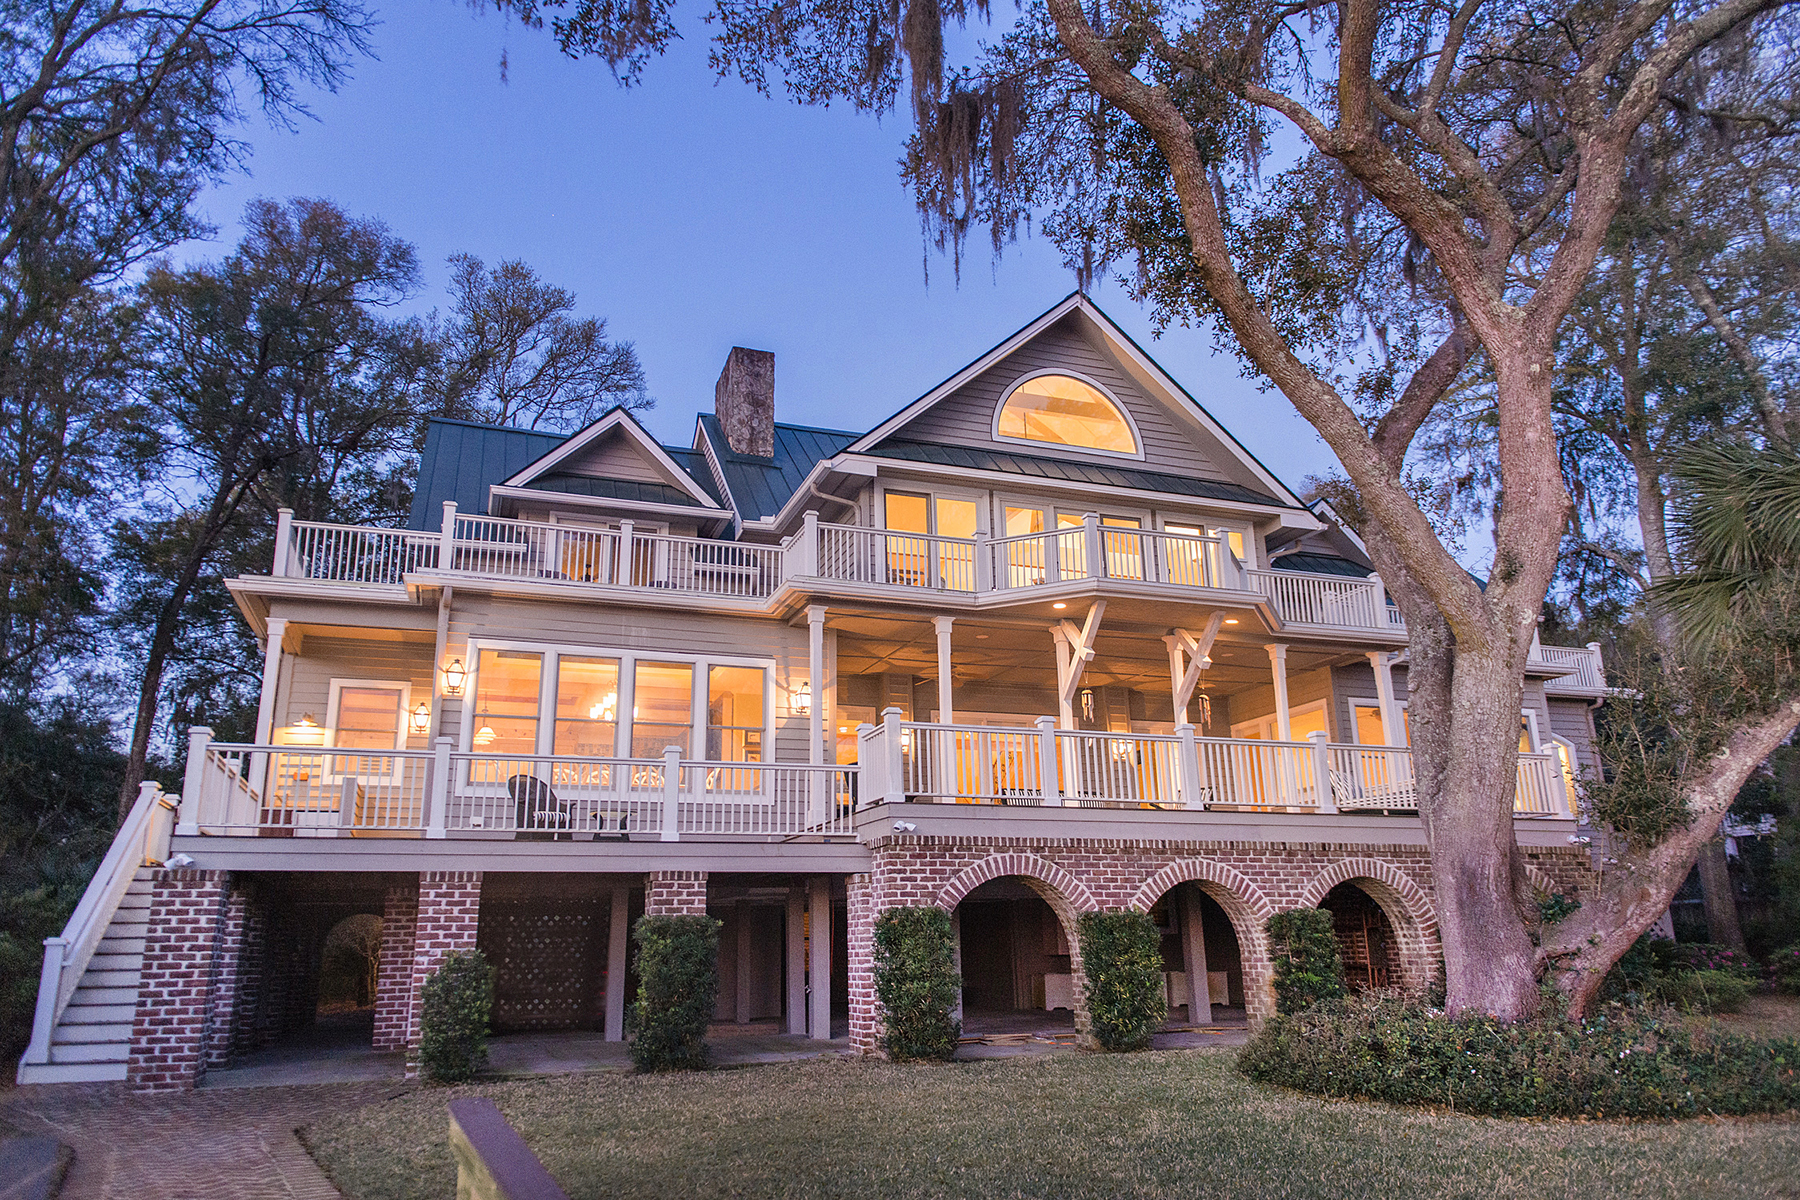 Single Family Home for Sale at Elegant Waterfront Estate 8928 Palmetto Road Edisto Island, South Carolina, 29438 United States